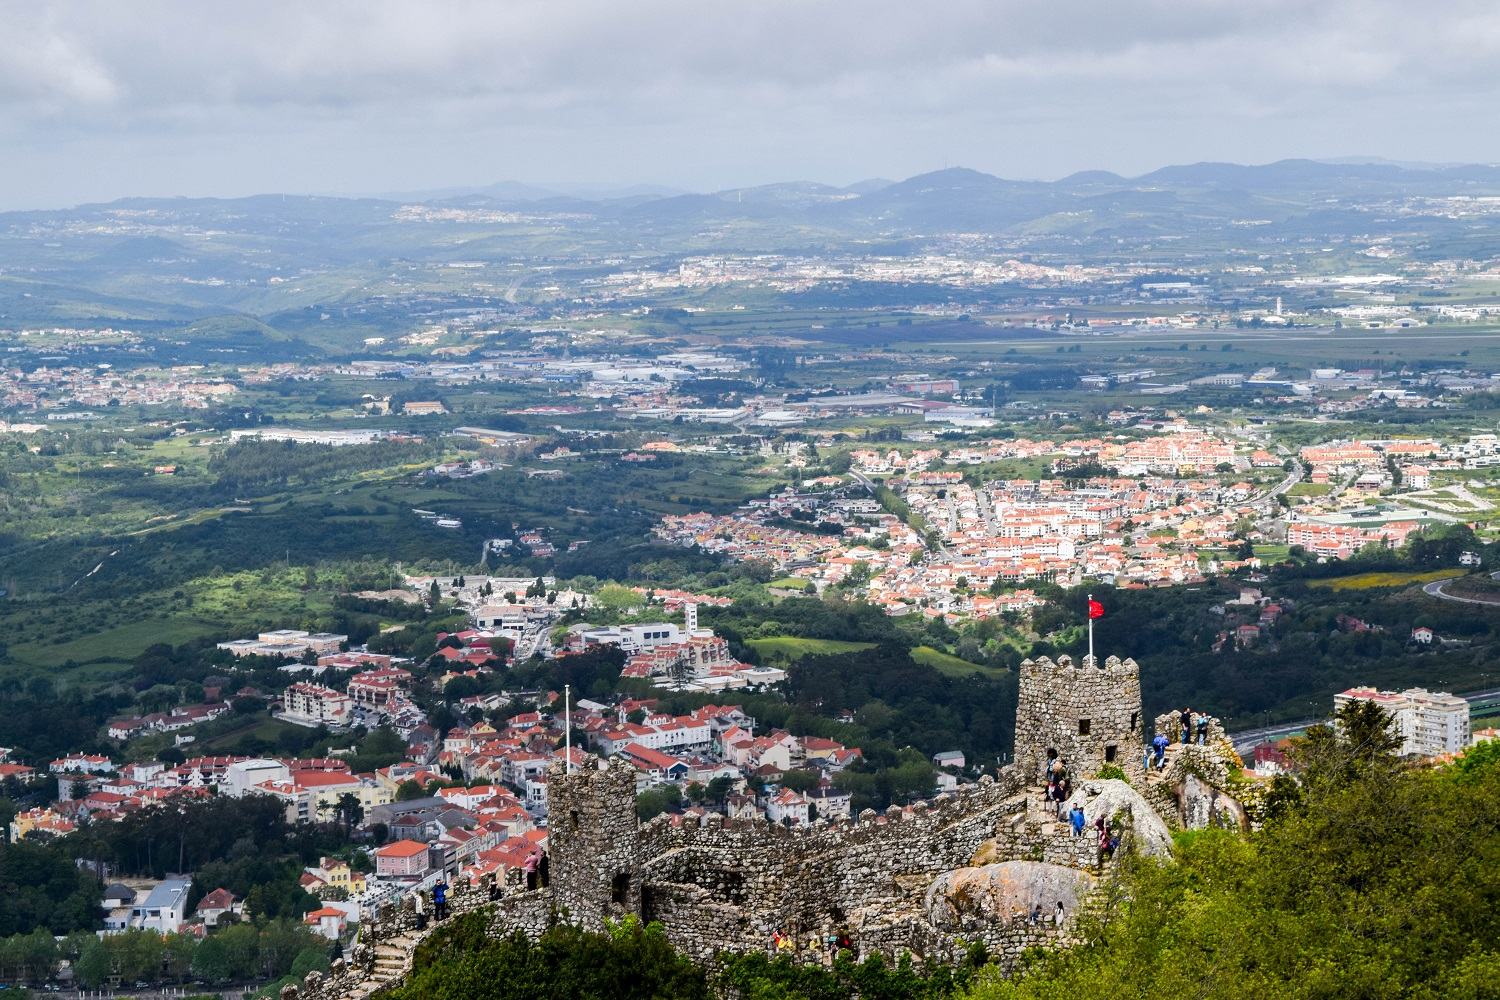 View from the Castelo dos Mouros